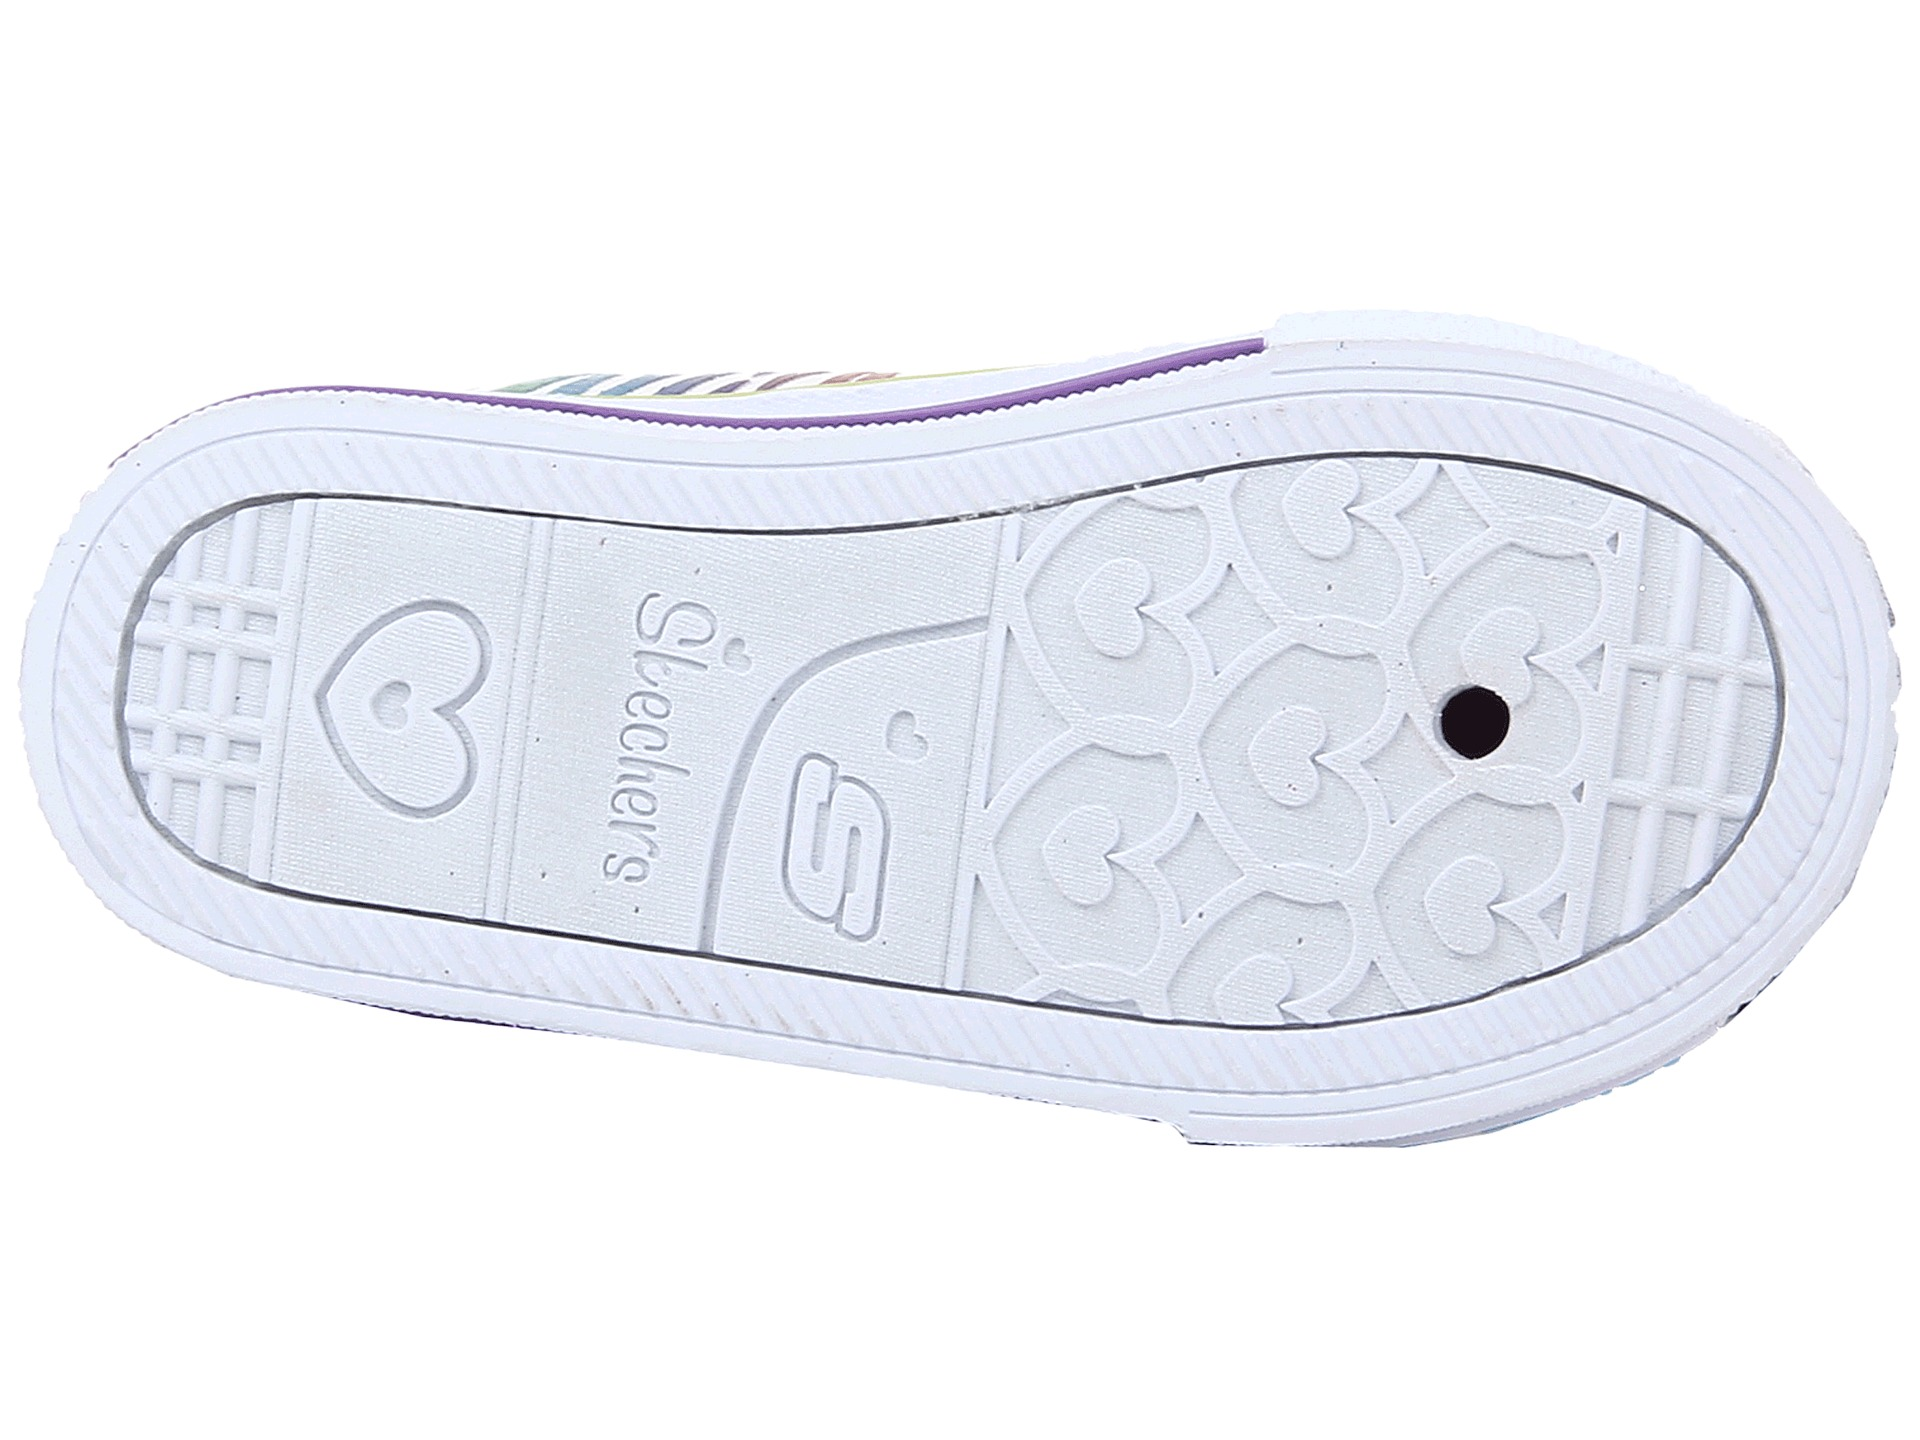 SKECHERS KIDS Shuffles - Polka Dot 10360L Lighted (Toddler